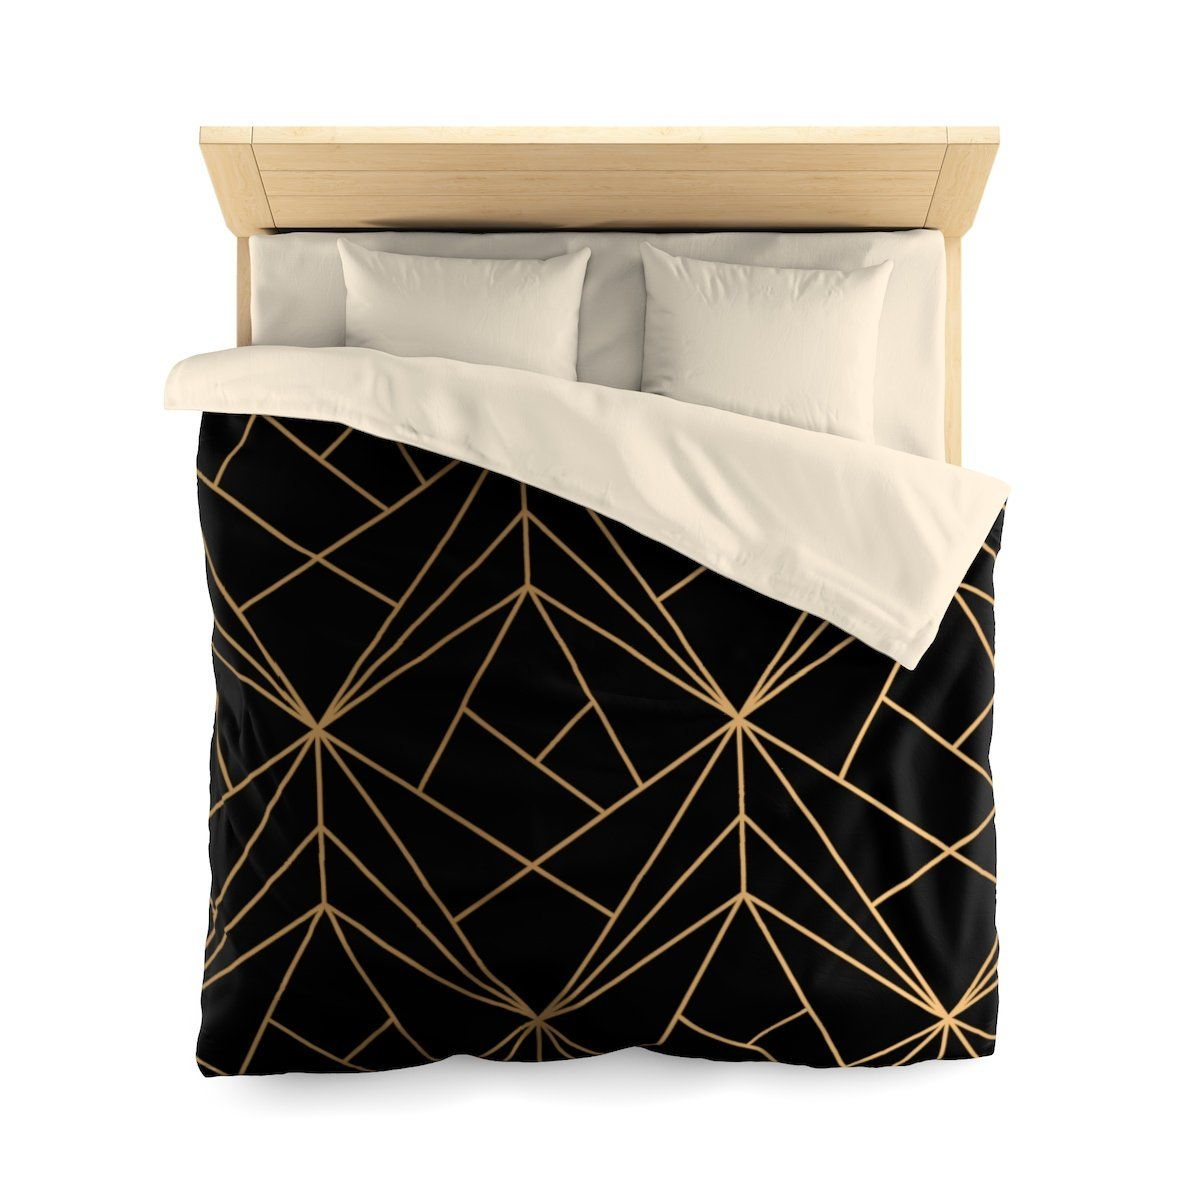 Classy Duvet Cover Black And Gold Geometric Pattern Bedding